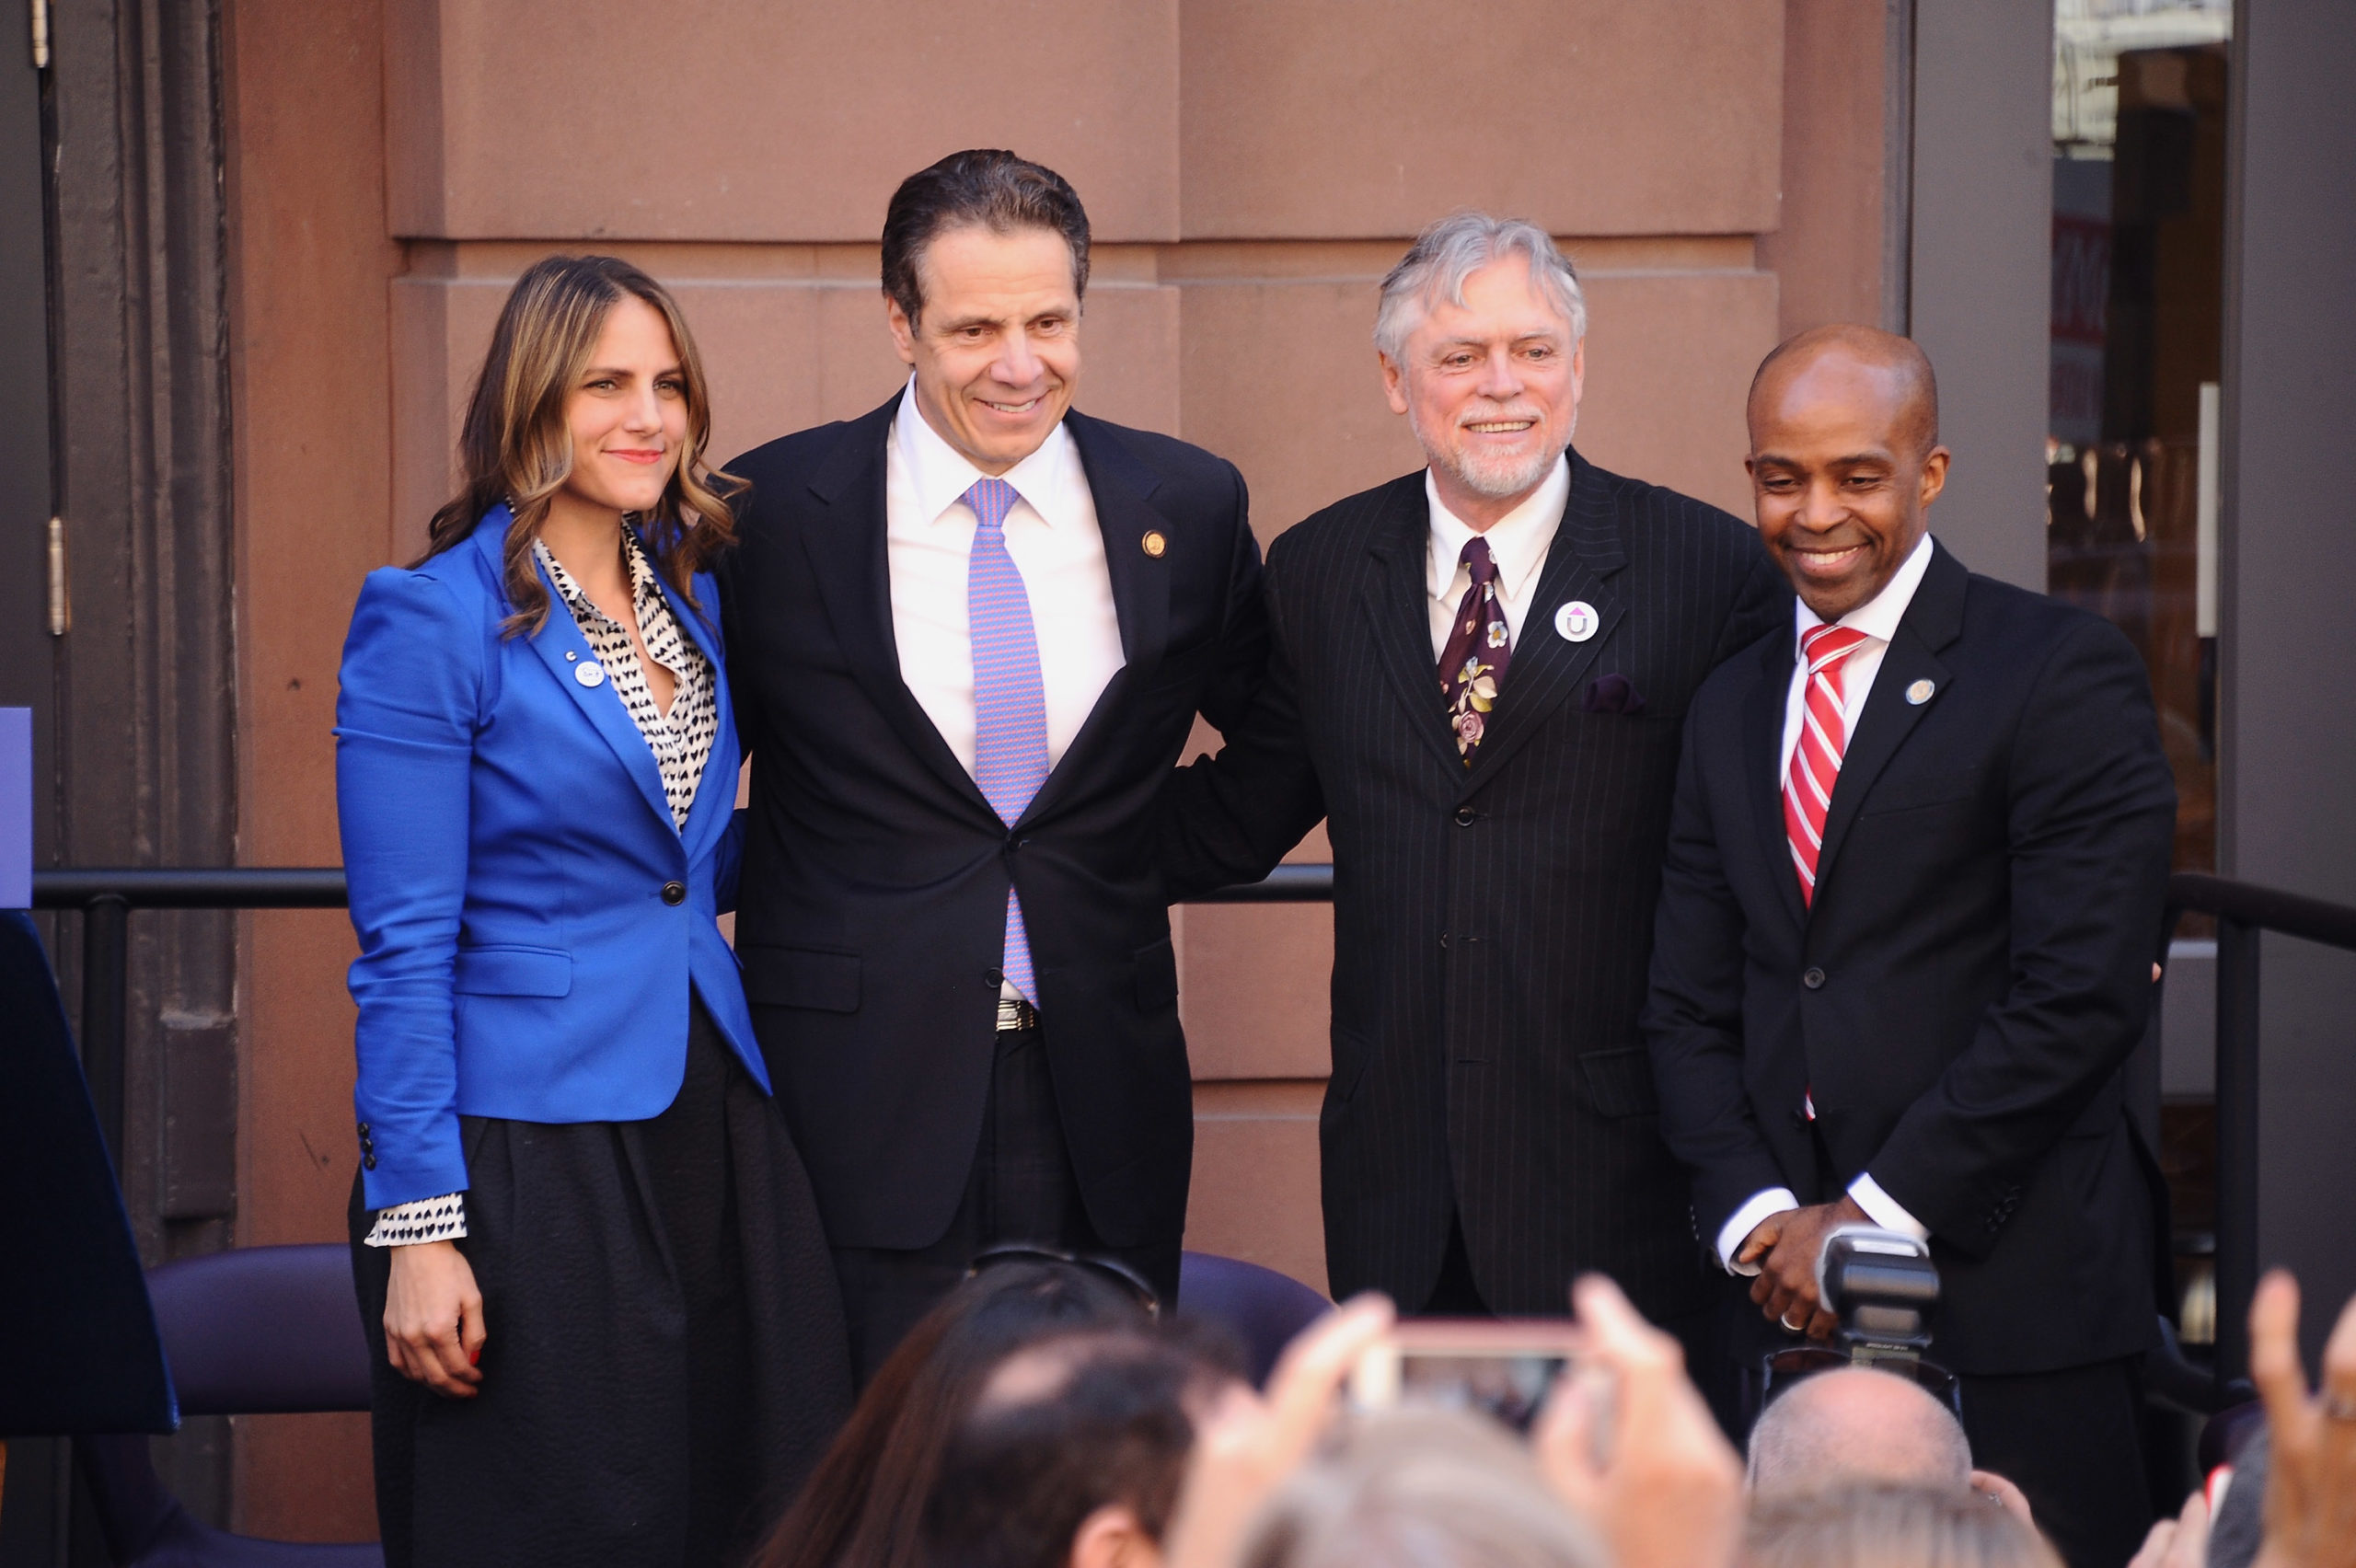 NEW YORK, NY - APRIL 29: (L-R) Glennda Testone, Governor Andrew Cuomo, Charles King and Alphonso David attend a press conference to announce 'The Blueprint To End AIDS' in New York on April 29, 2015 in New York City. (Photo by Gary Gershoff/Getty Images for Housing Works)